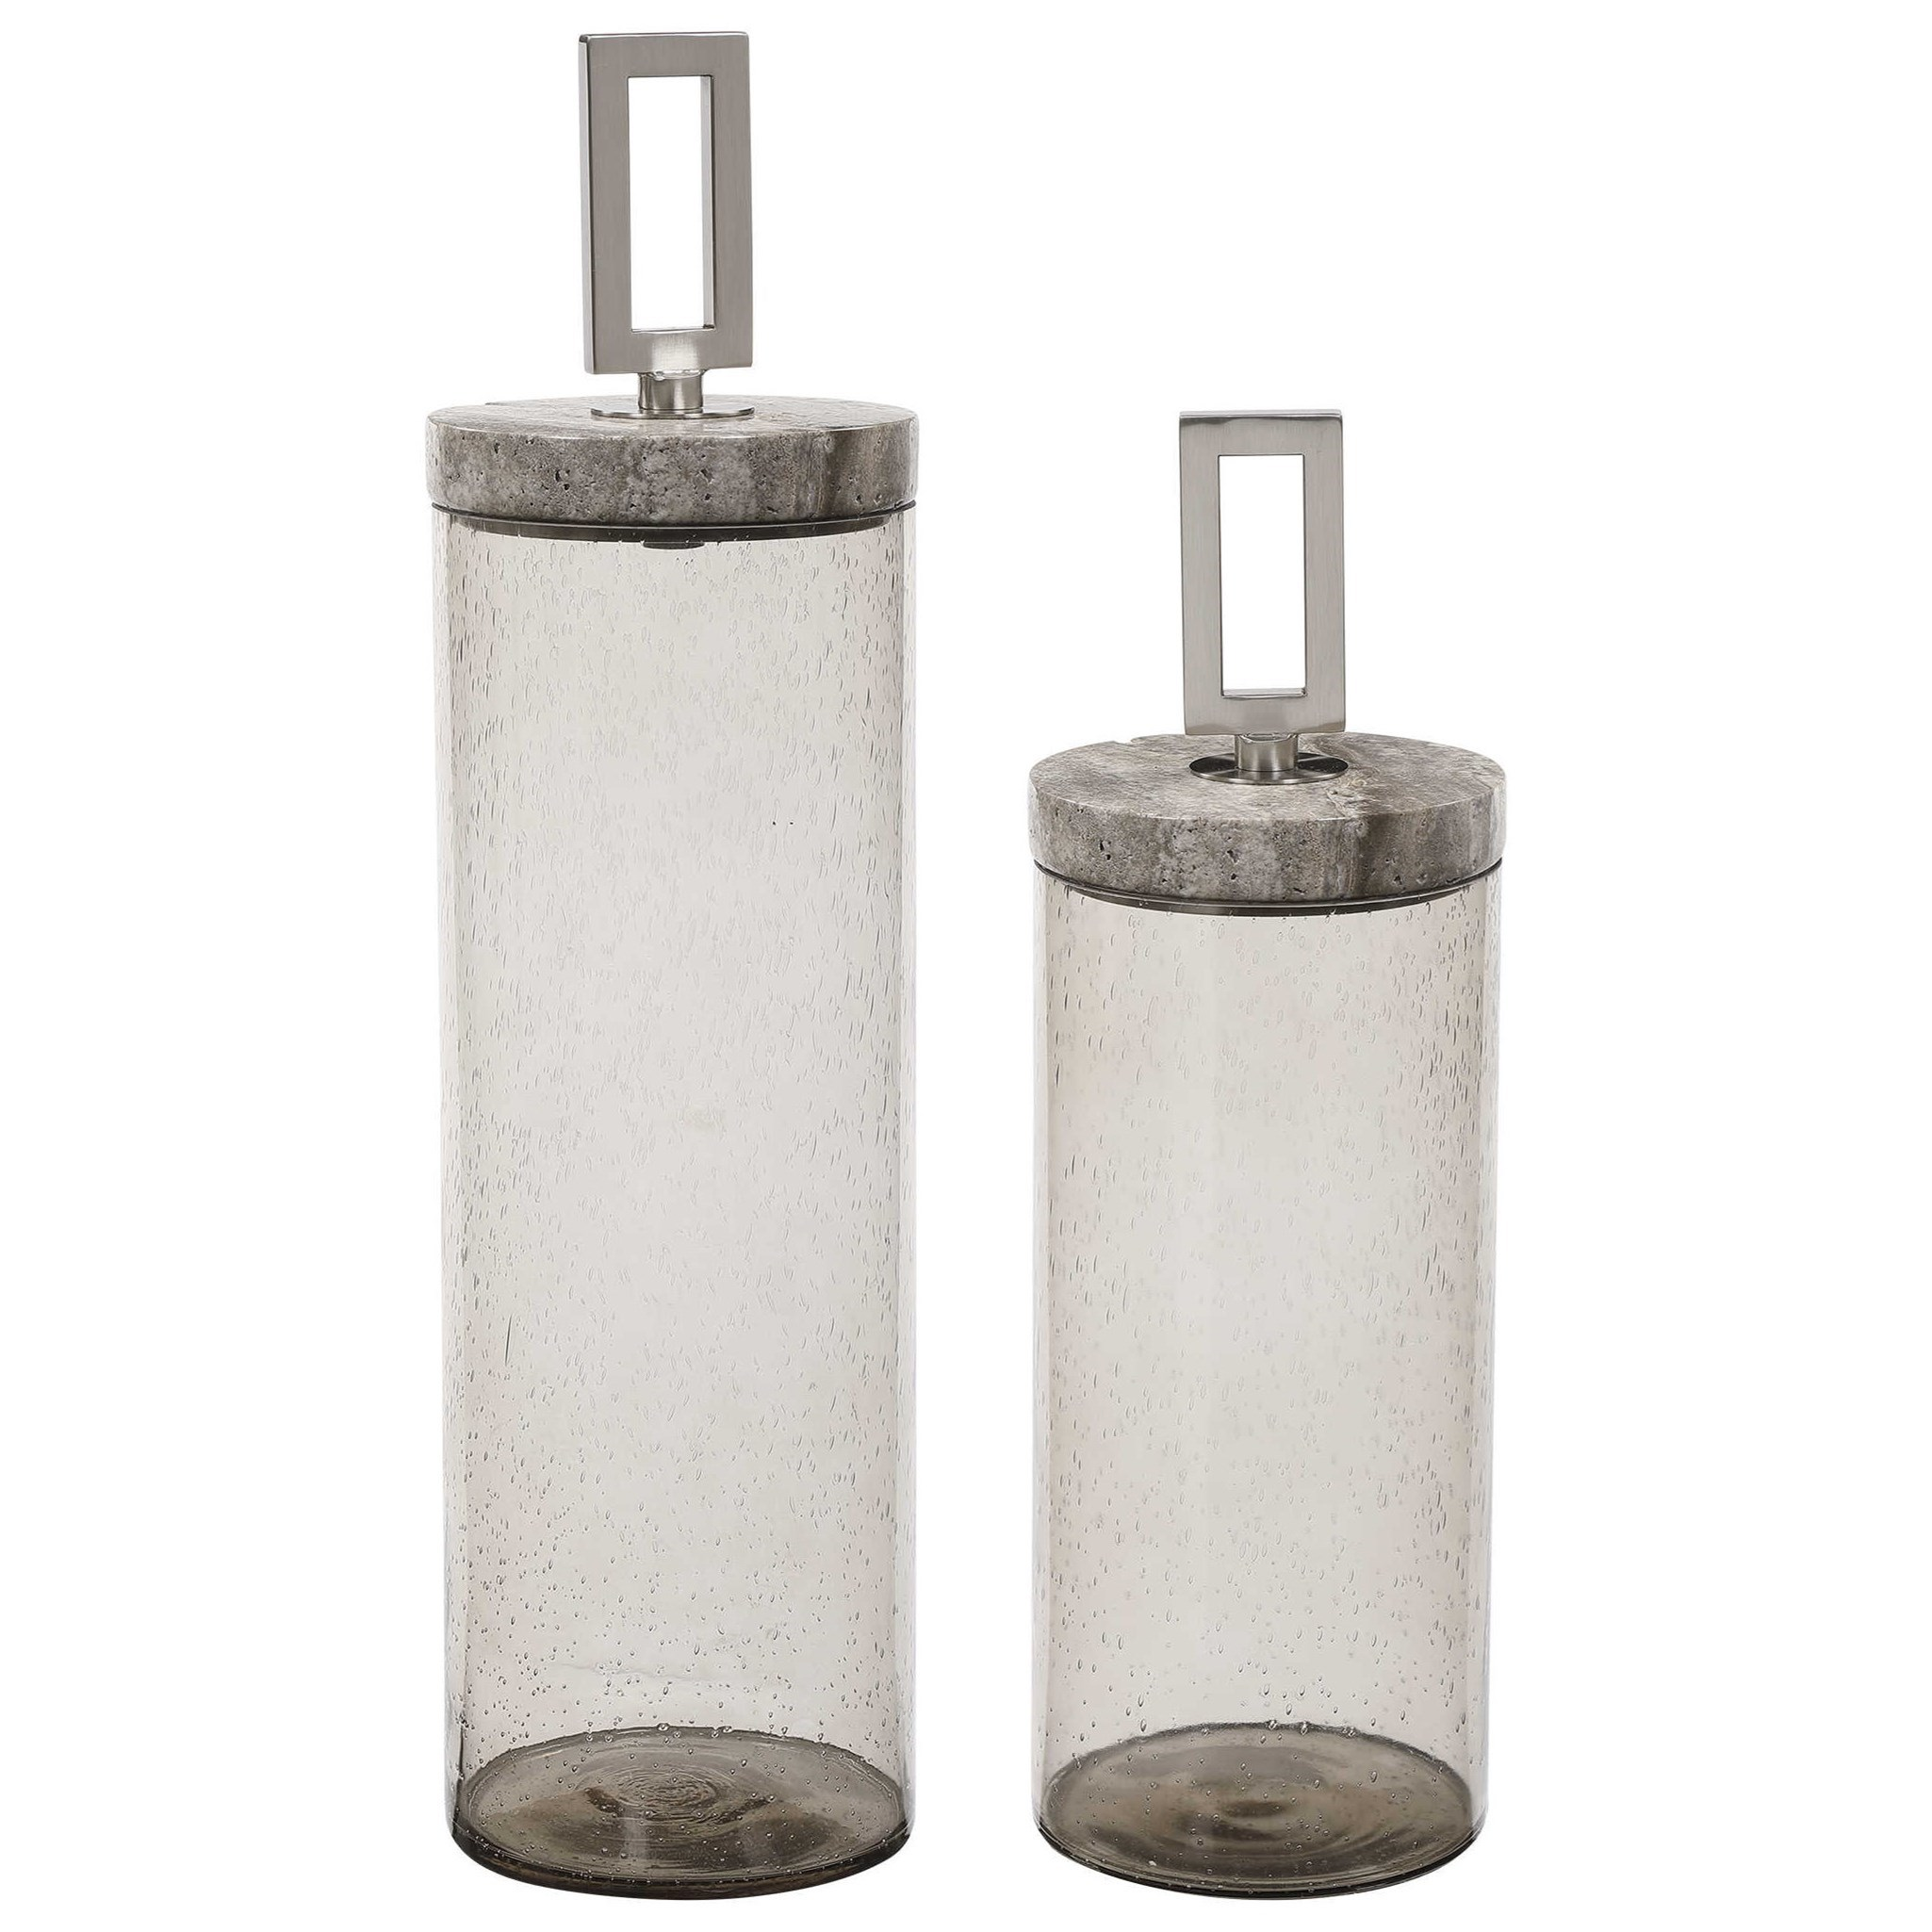 Accessories Seeded Glass Containers, S/2 by Uttermost at Del Sol Furniture